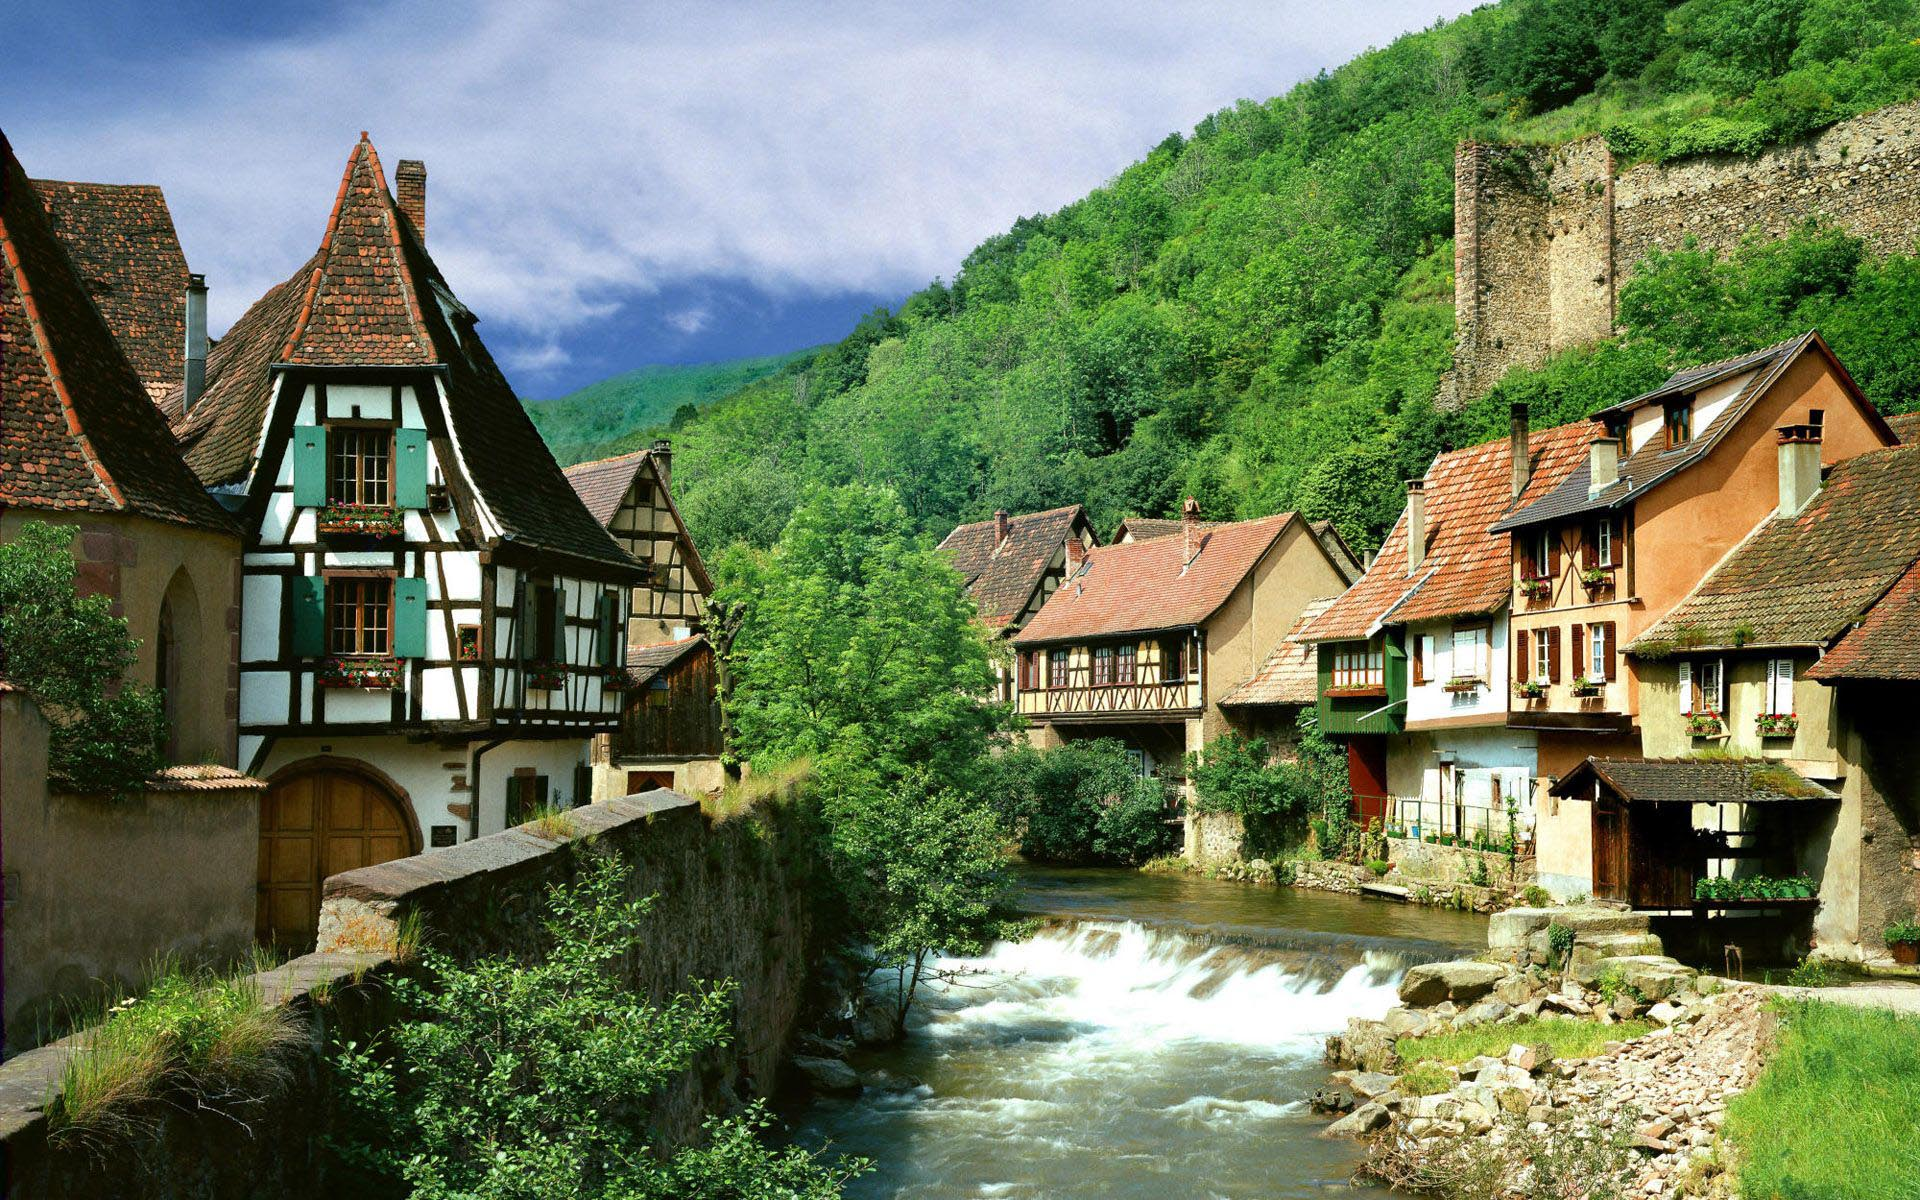 The Mystical Europe